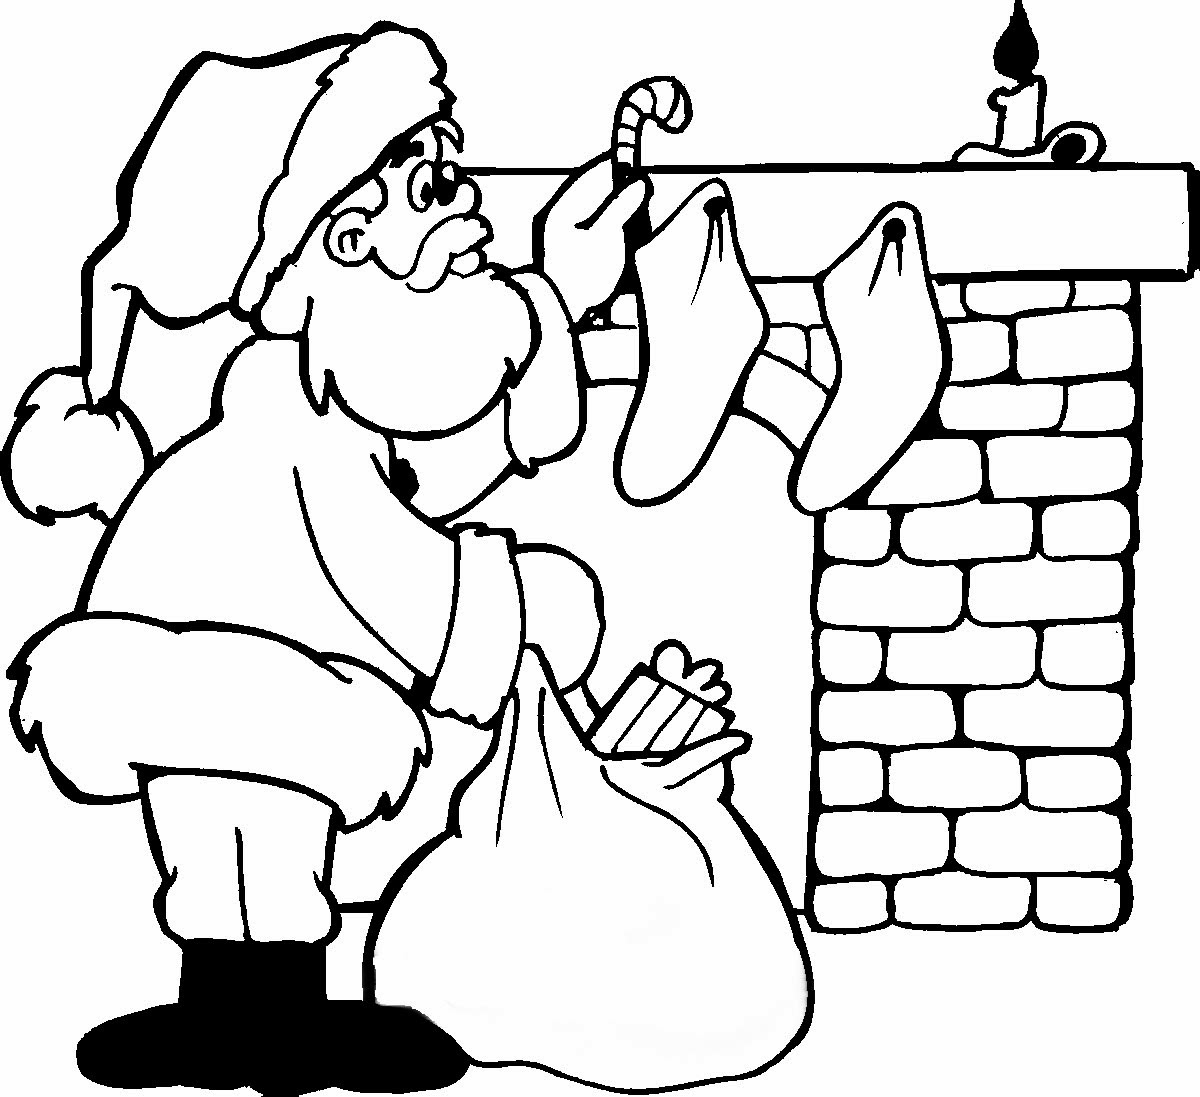 childrens christmas colouring fascinating articles and cool stuff free christmas colouring christmas childrens